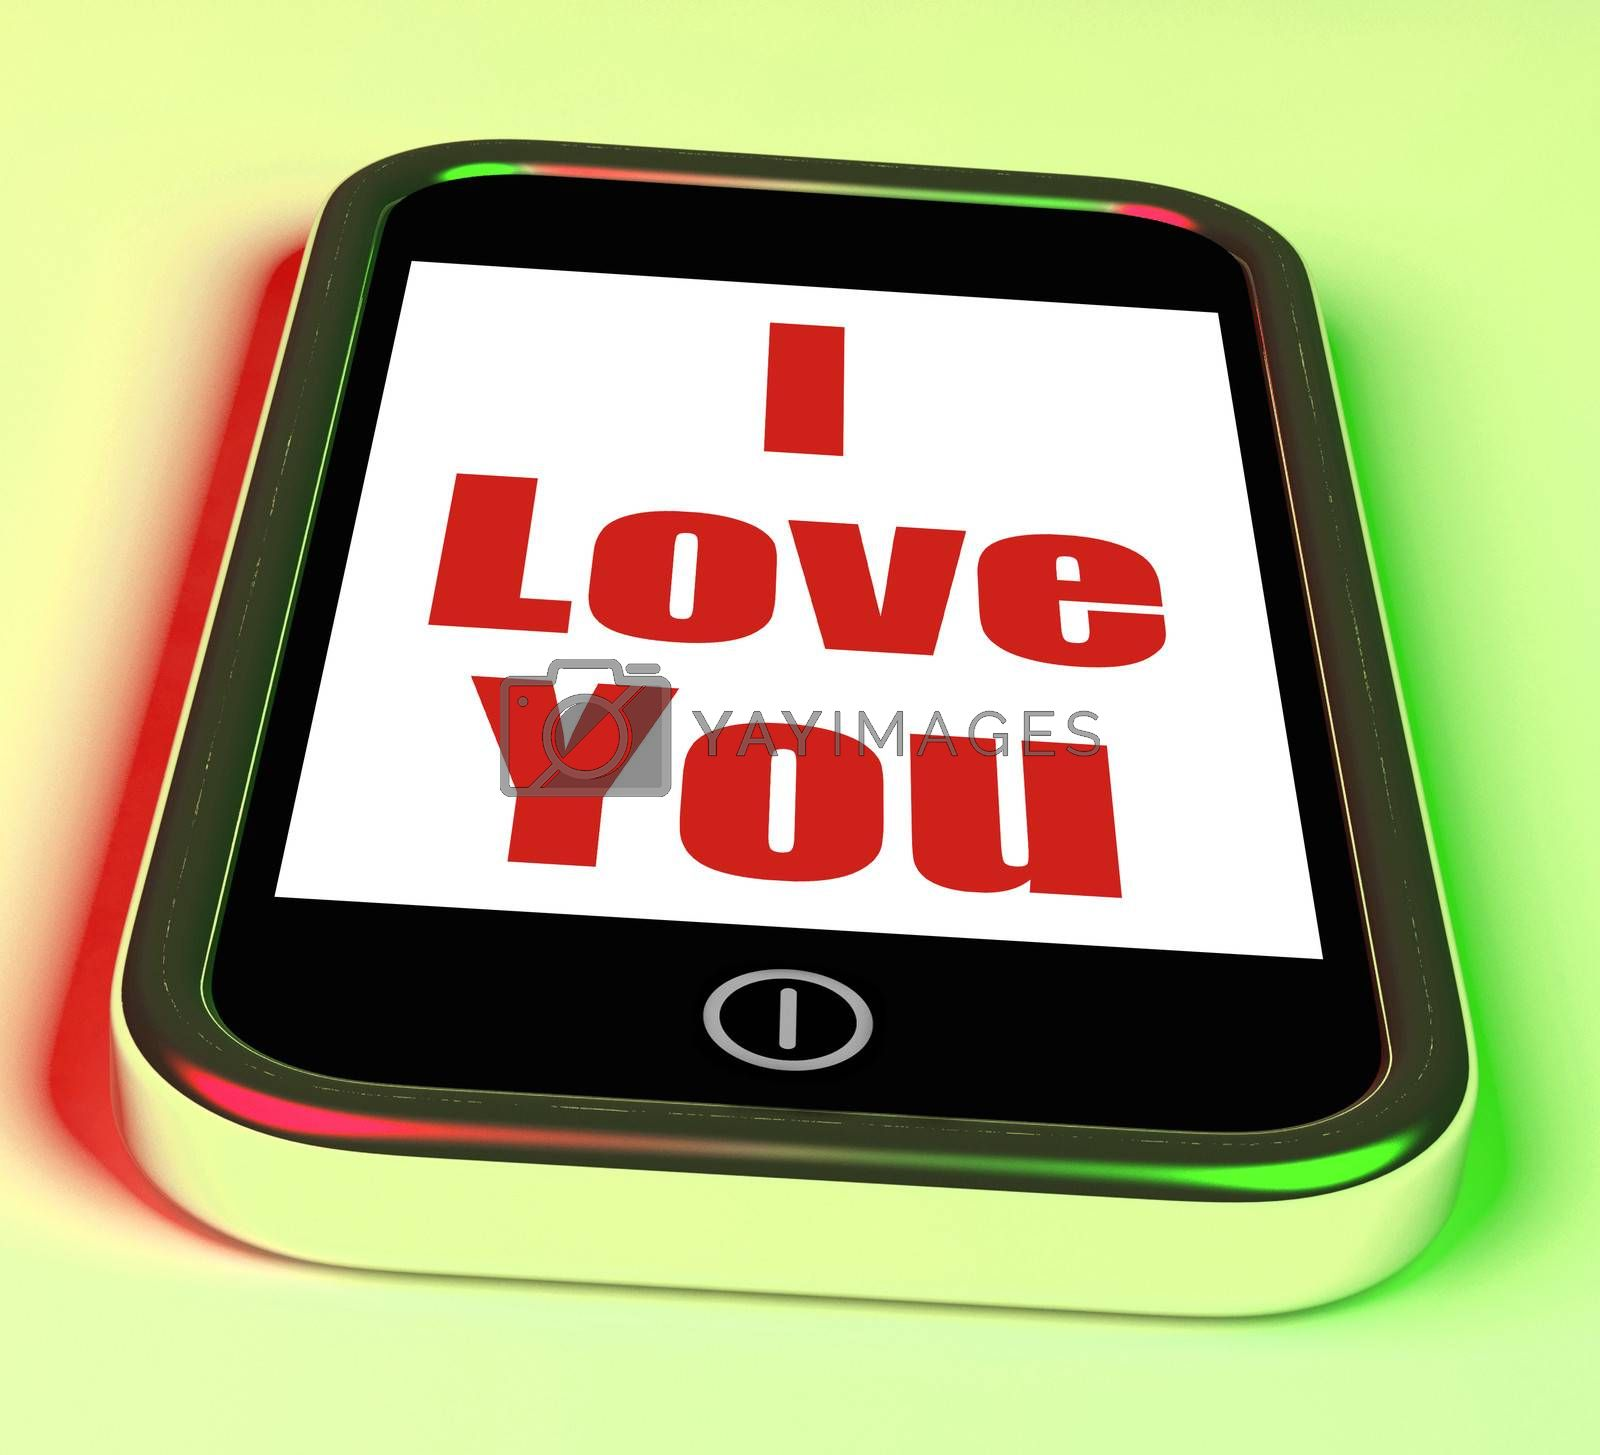 I Love You On Phone Showing Adore Romance